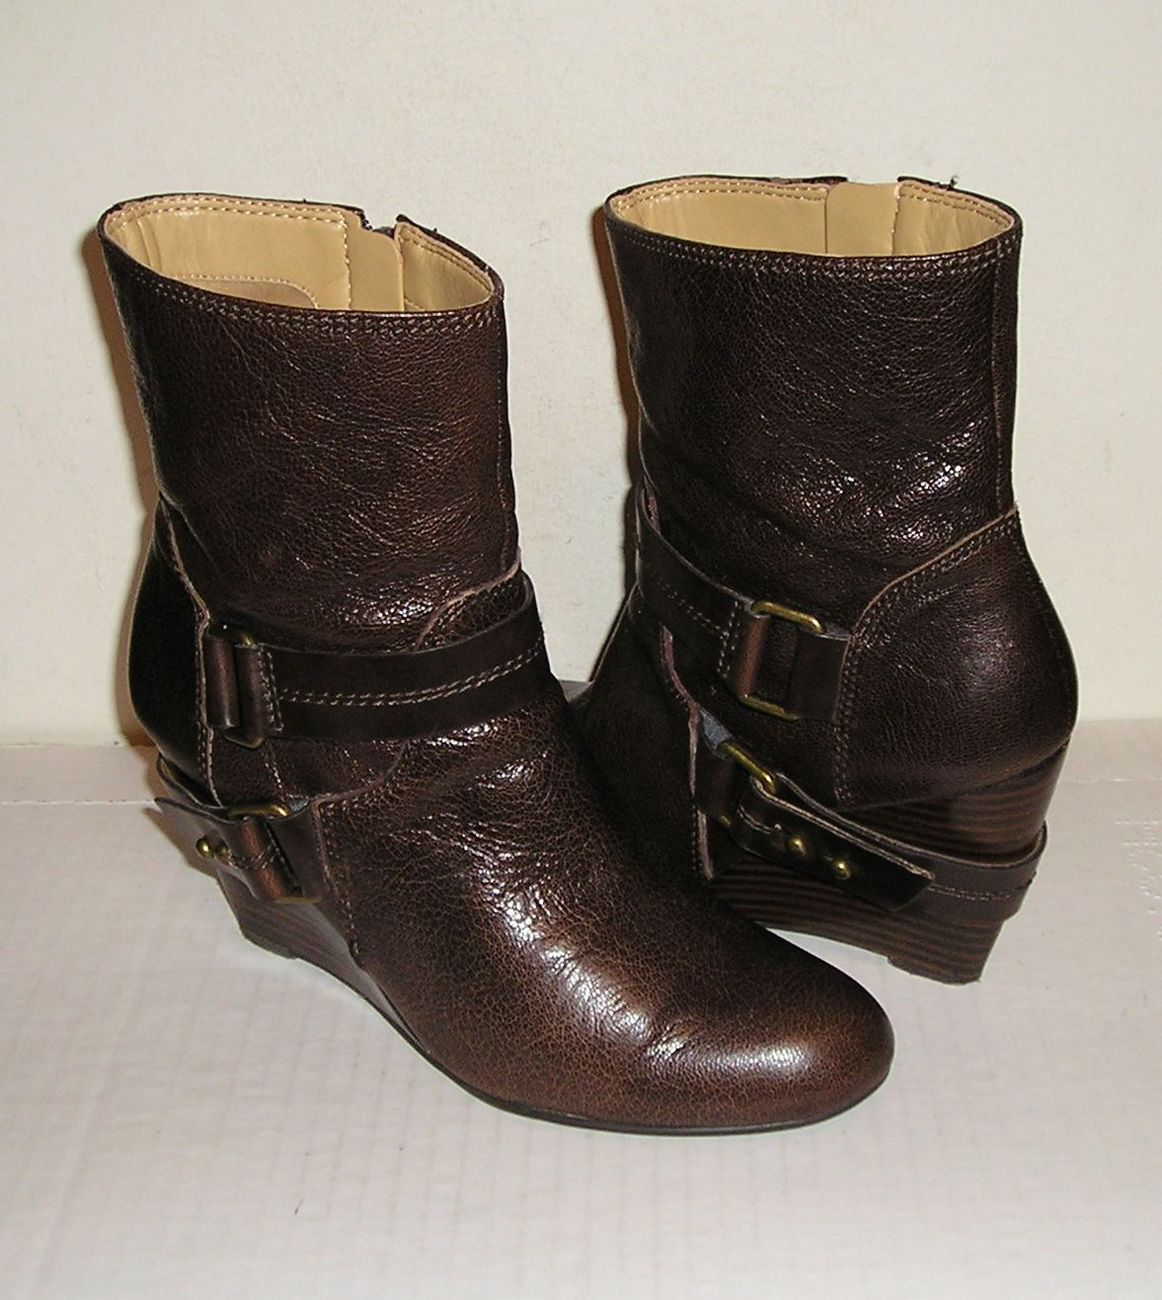 Nine west onthegco women s brown leather wedge buckle ankle boots 8 m   1